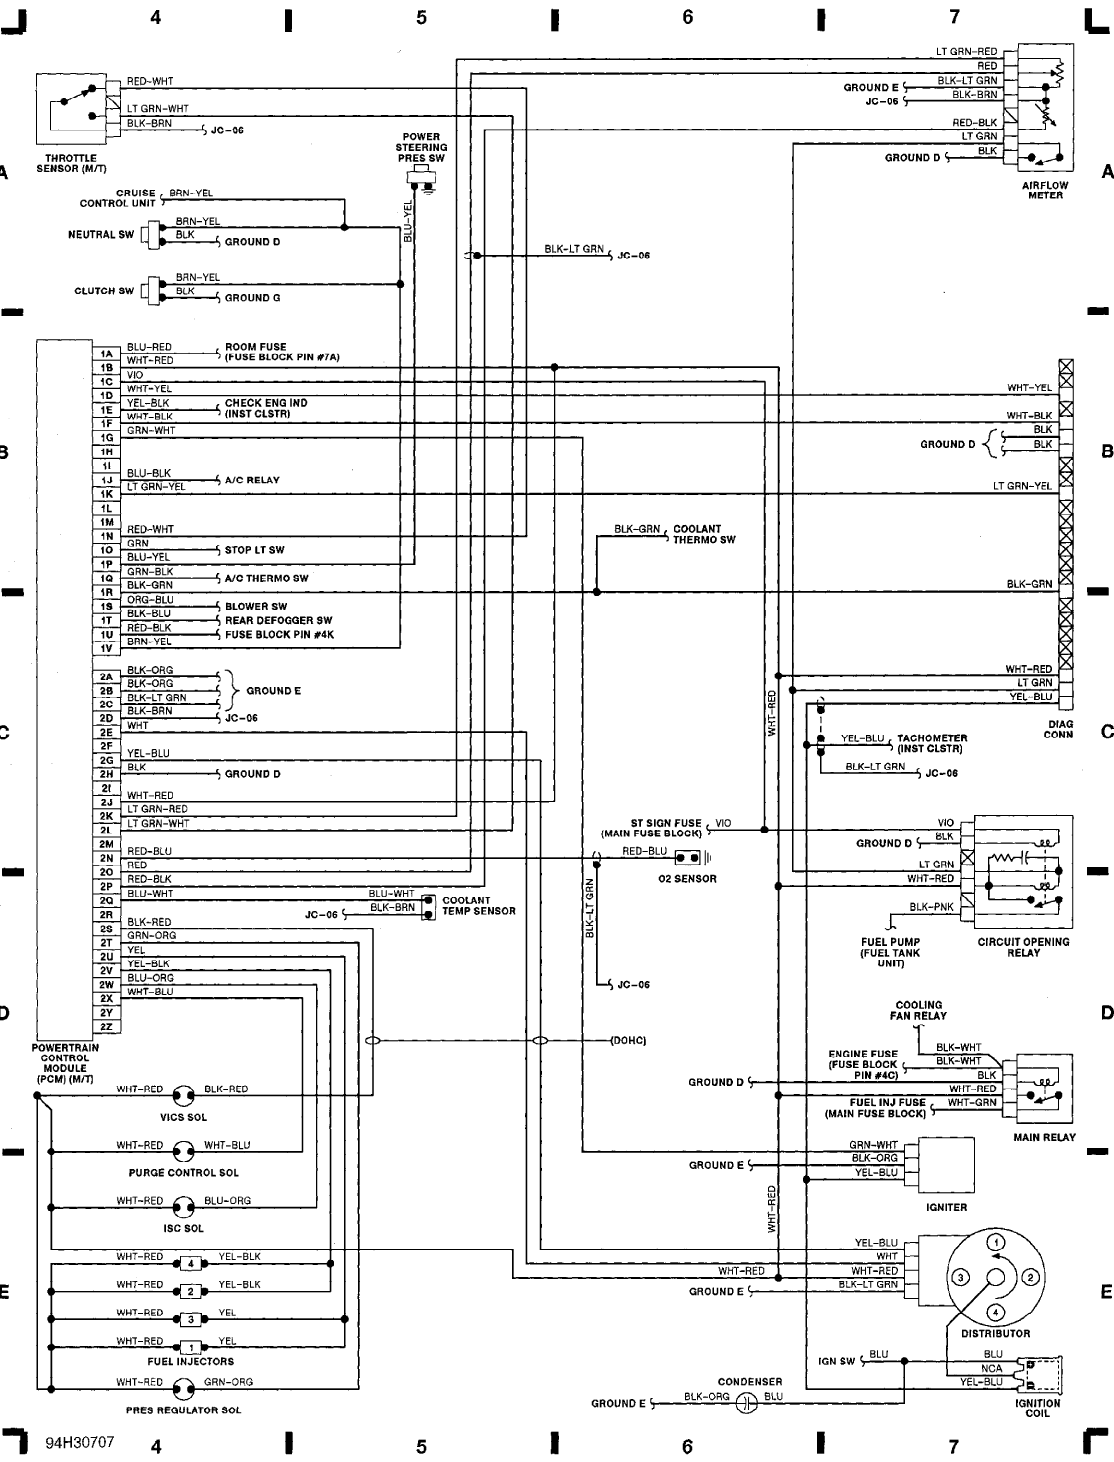 2013 hyundai sonata radio wire diagrams  hyundai  wiring diagram images